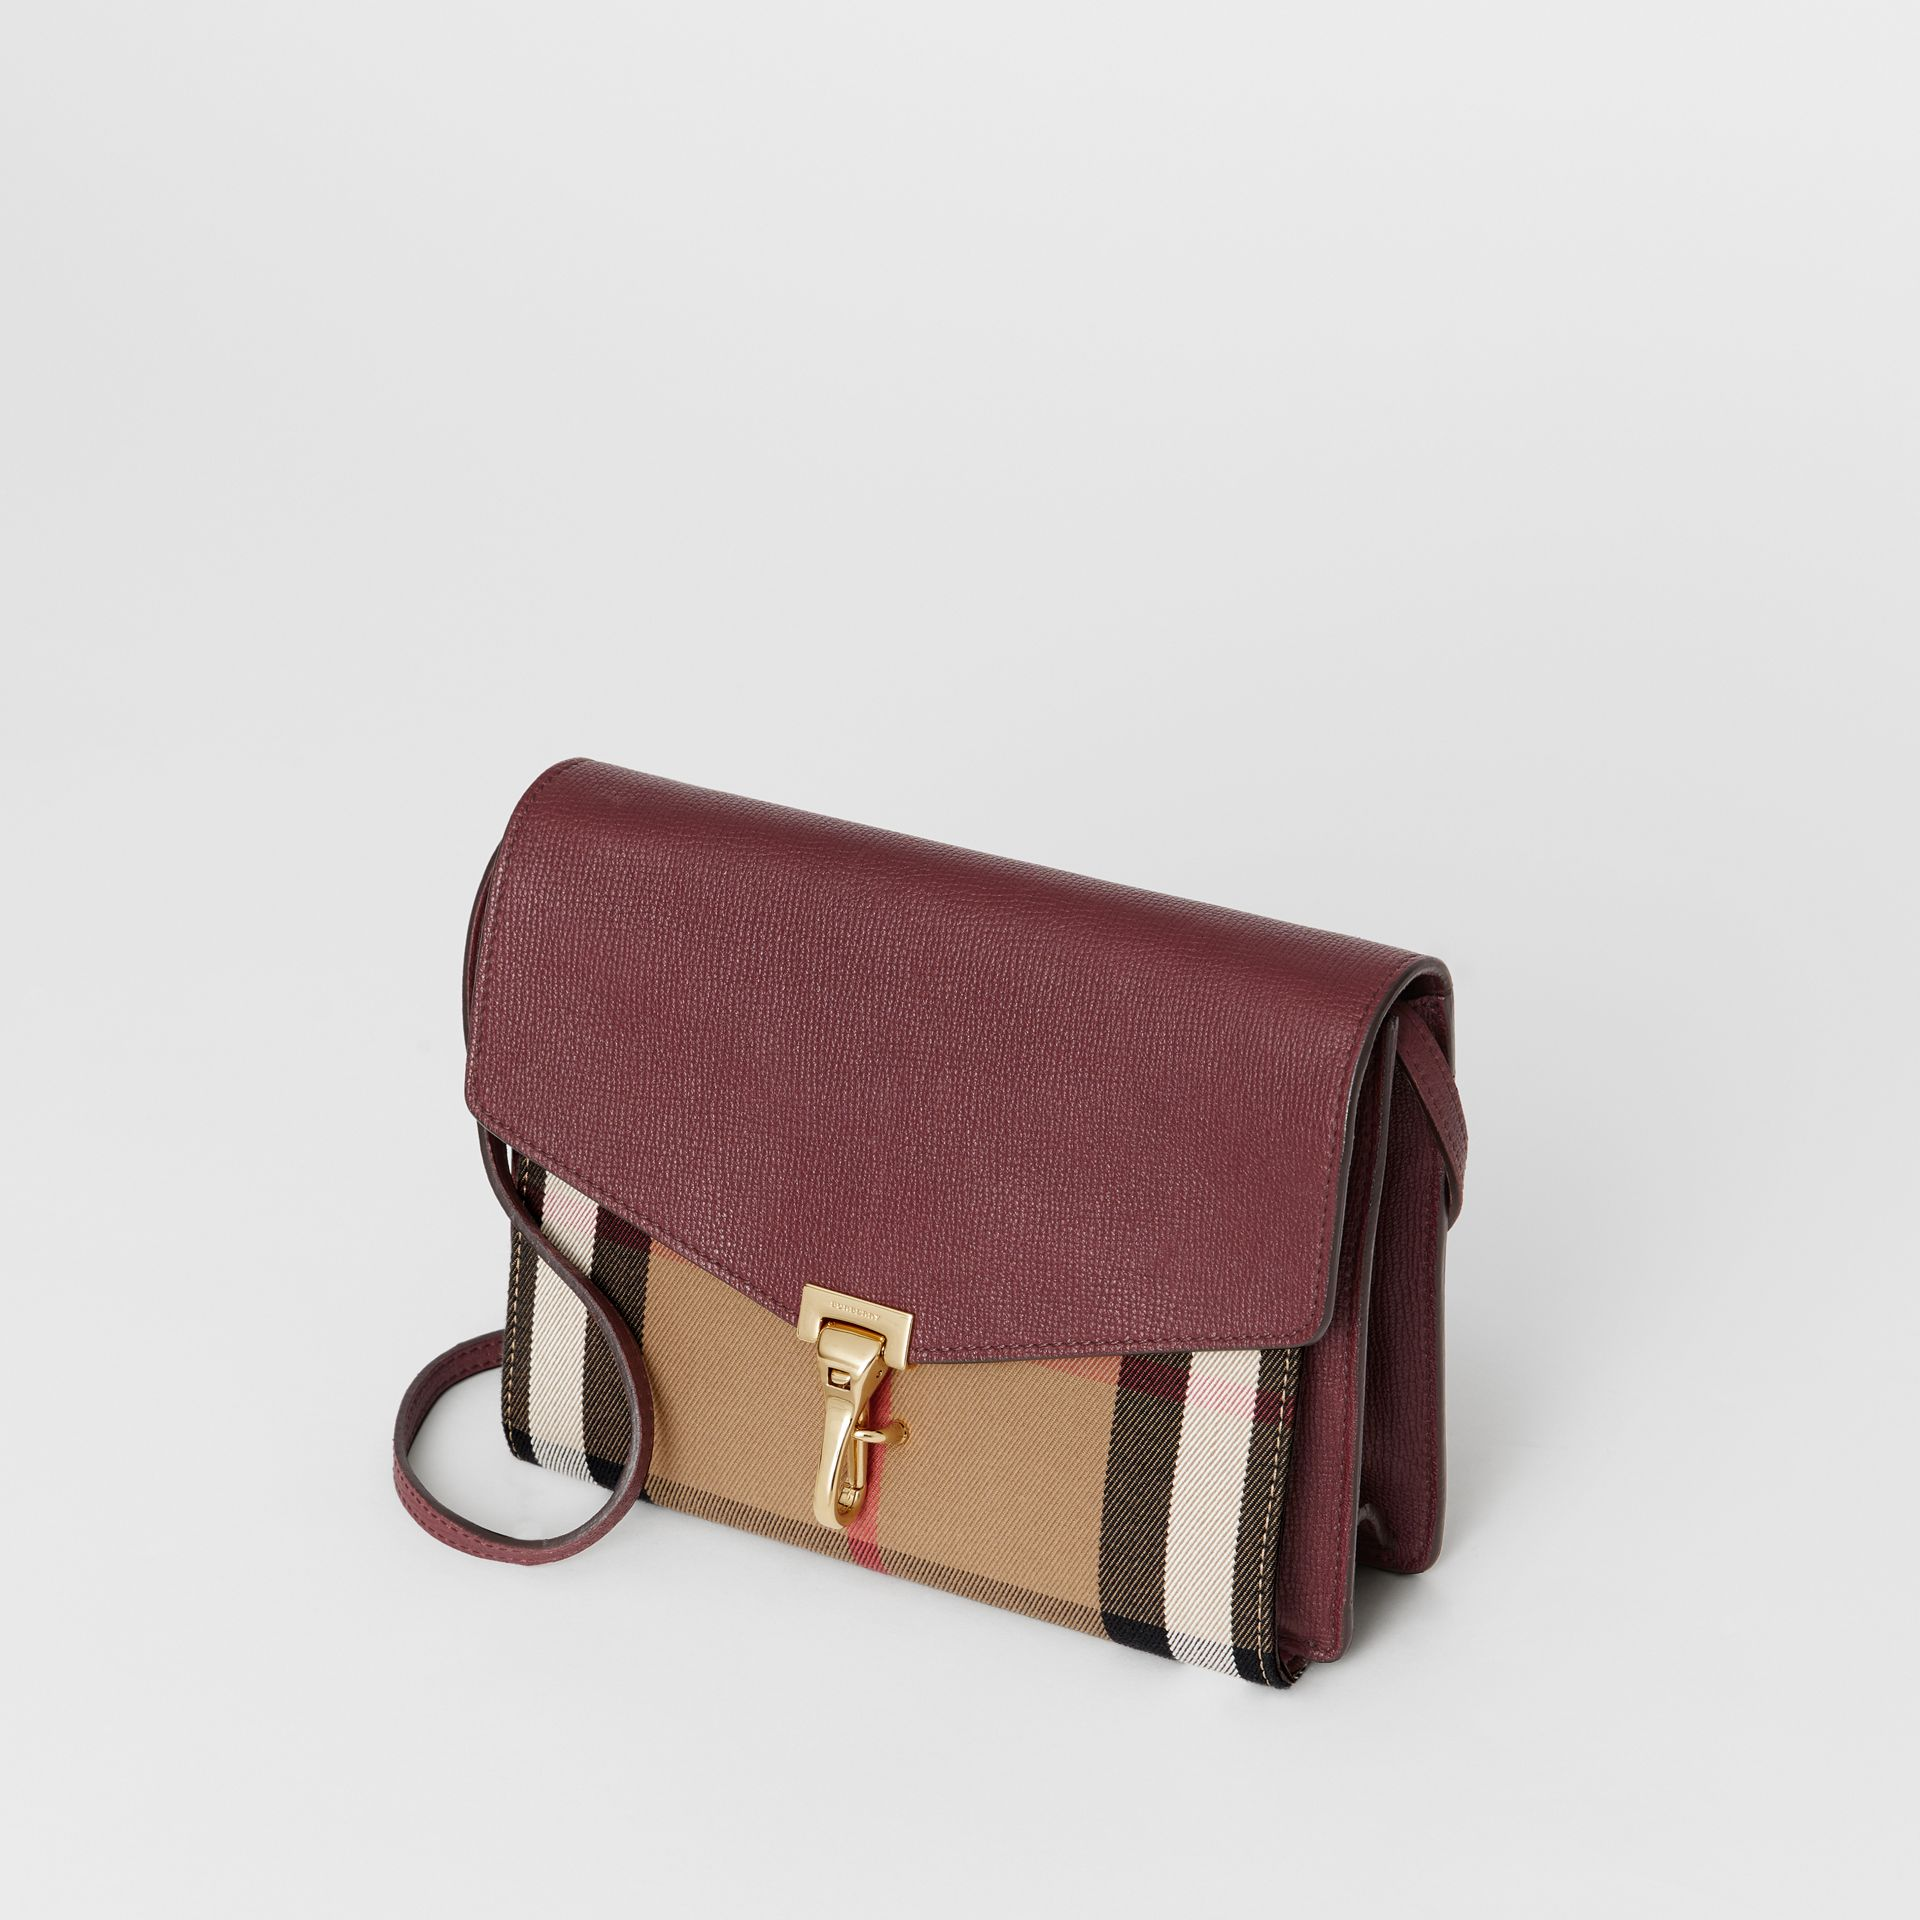 Small Leather and House Check Crossbody Bag in Mahogany Red - Women | Burberry - gallery image 4